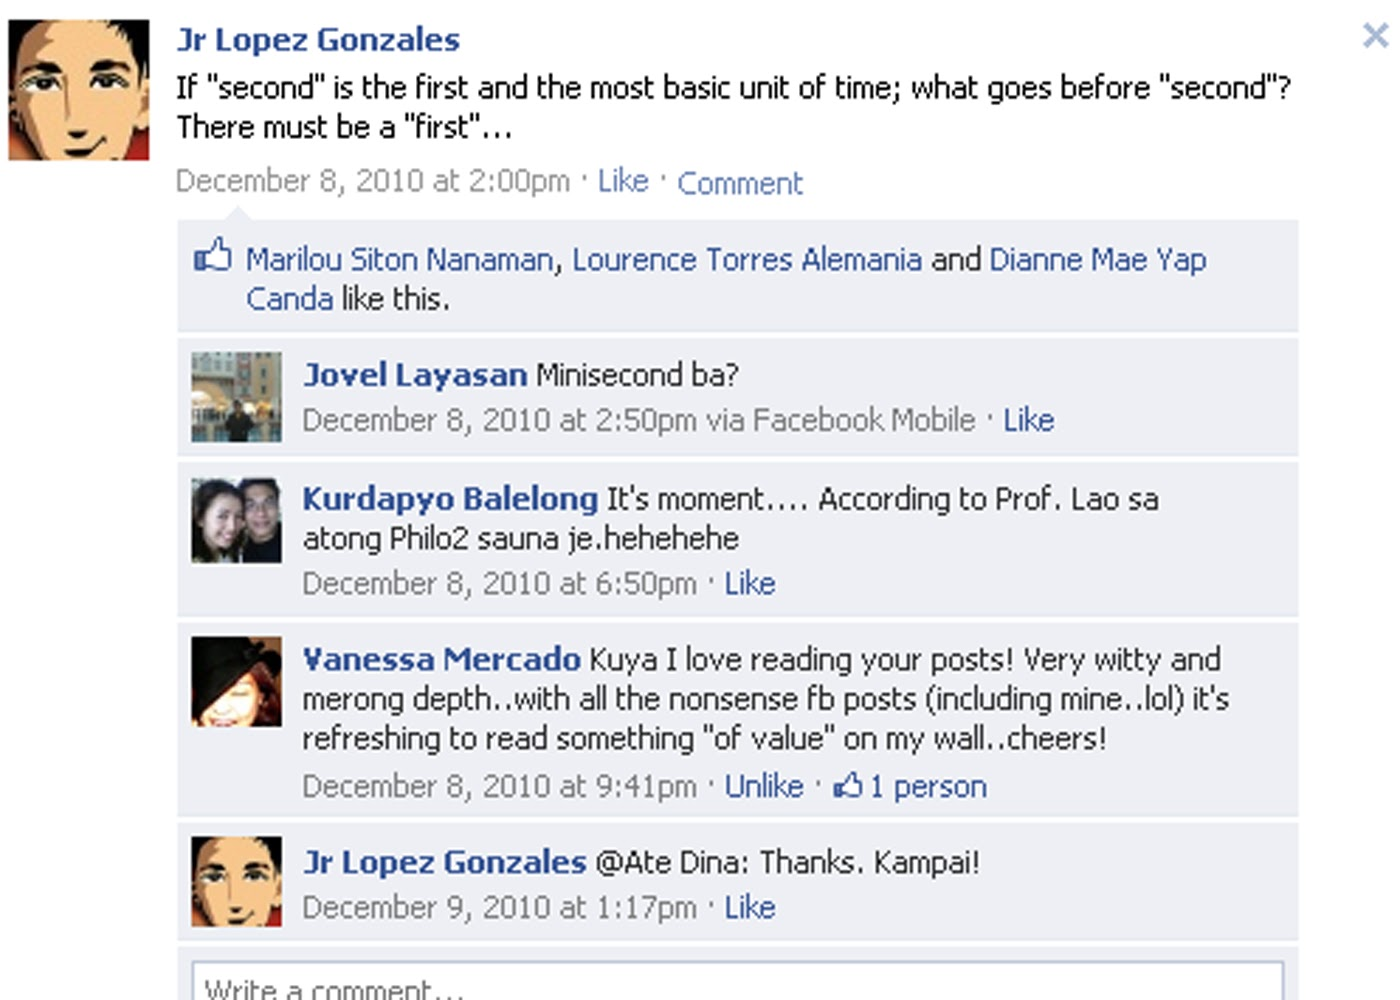 funny facebook wall posts of jr lopez gonzales part 5 funny facebook ...